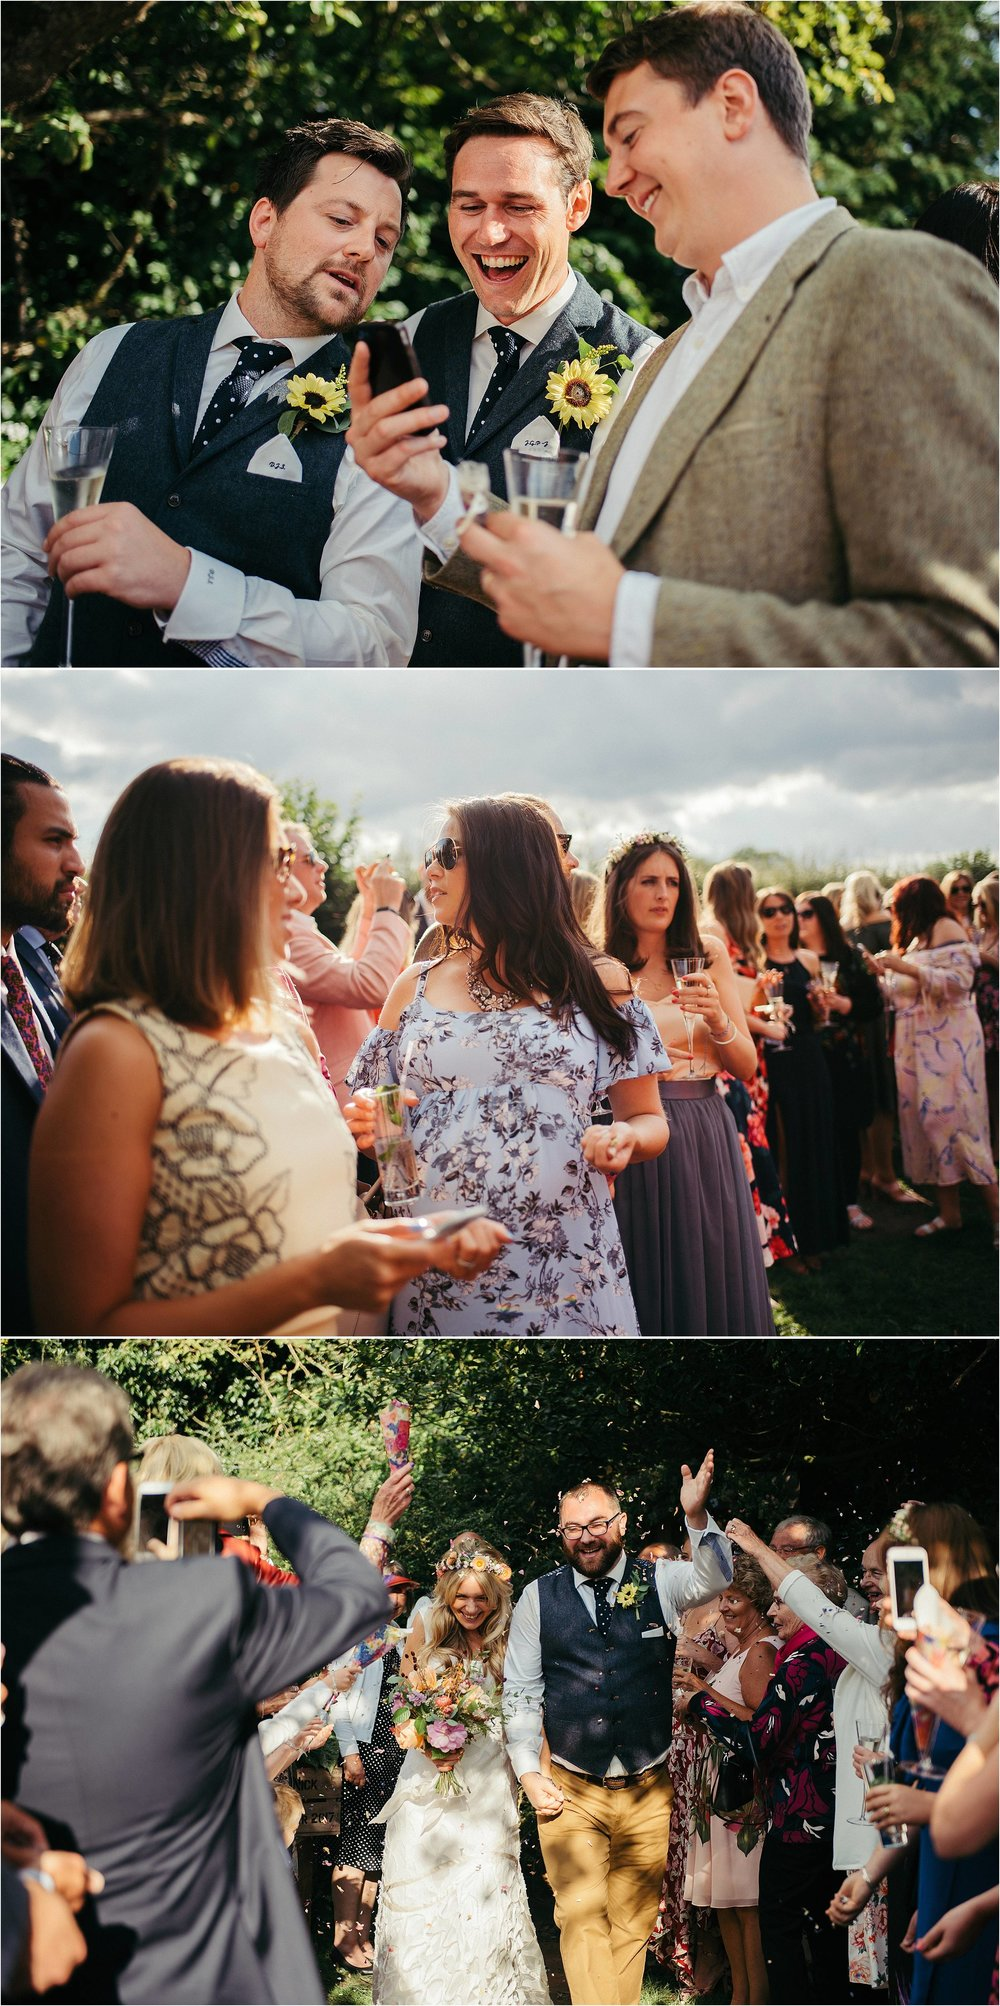 The Crooked Billet Pub Oxfordshire Wedding Photography_0060.jpg